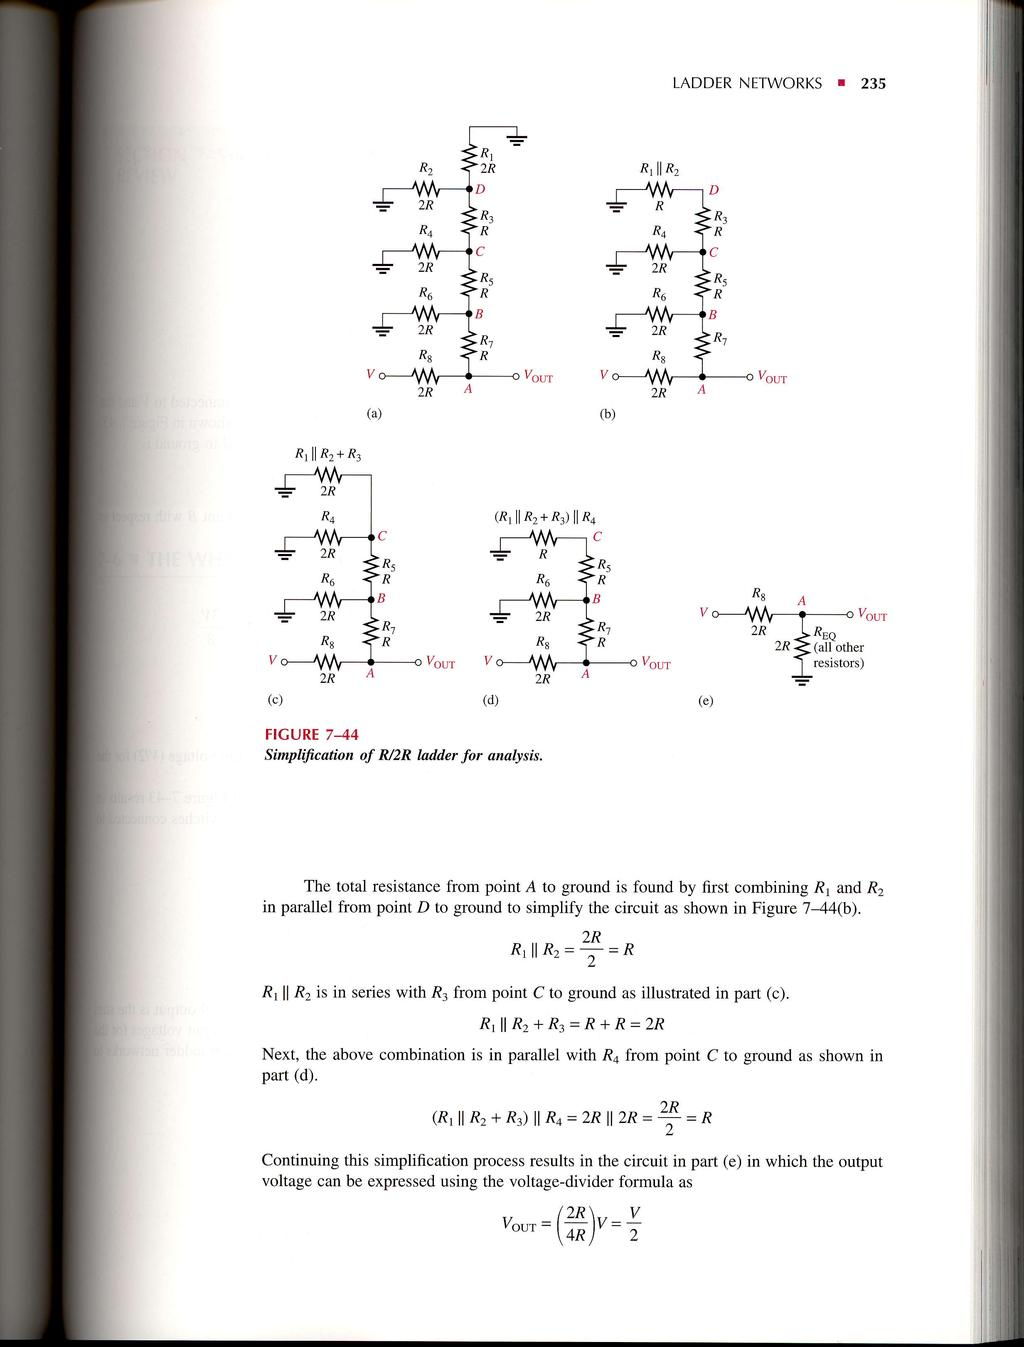 Seriesparallel Circuits Pdf Voltage Divider Is A Circuit That Produces An Output Ladder Networks 235 R2 Zk Rt 2r R6rl D I